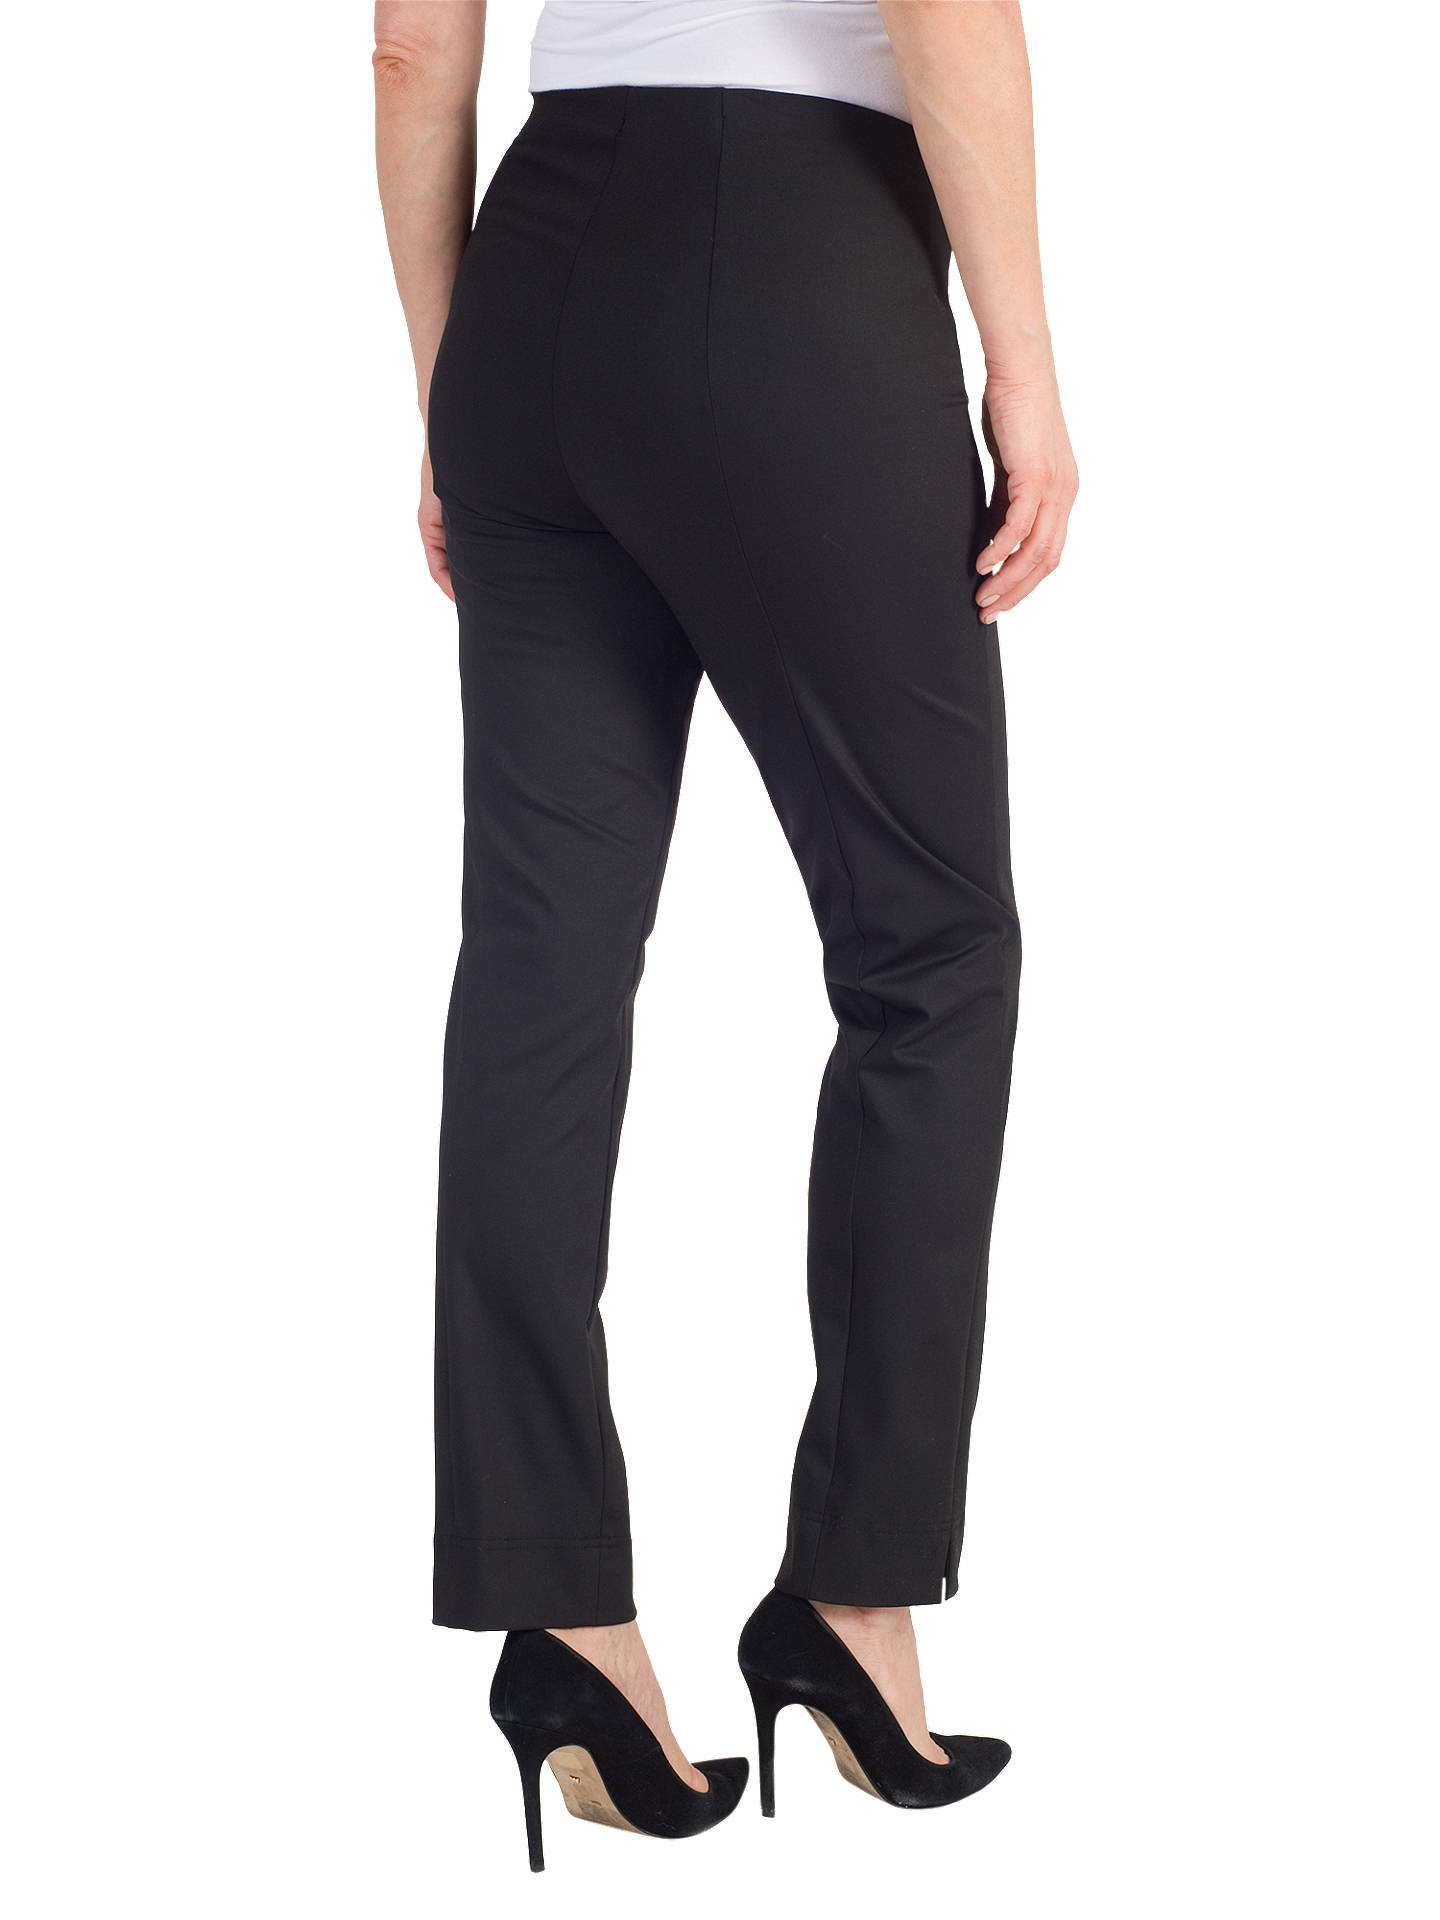 BuyChesca Stretch Slim Leg Trousers, Black, 12 Online at johnlewis.com